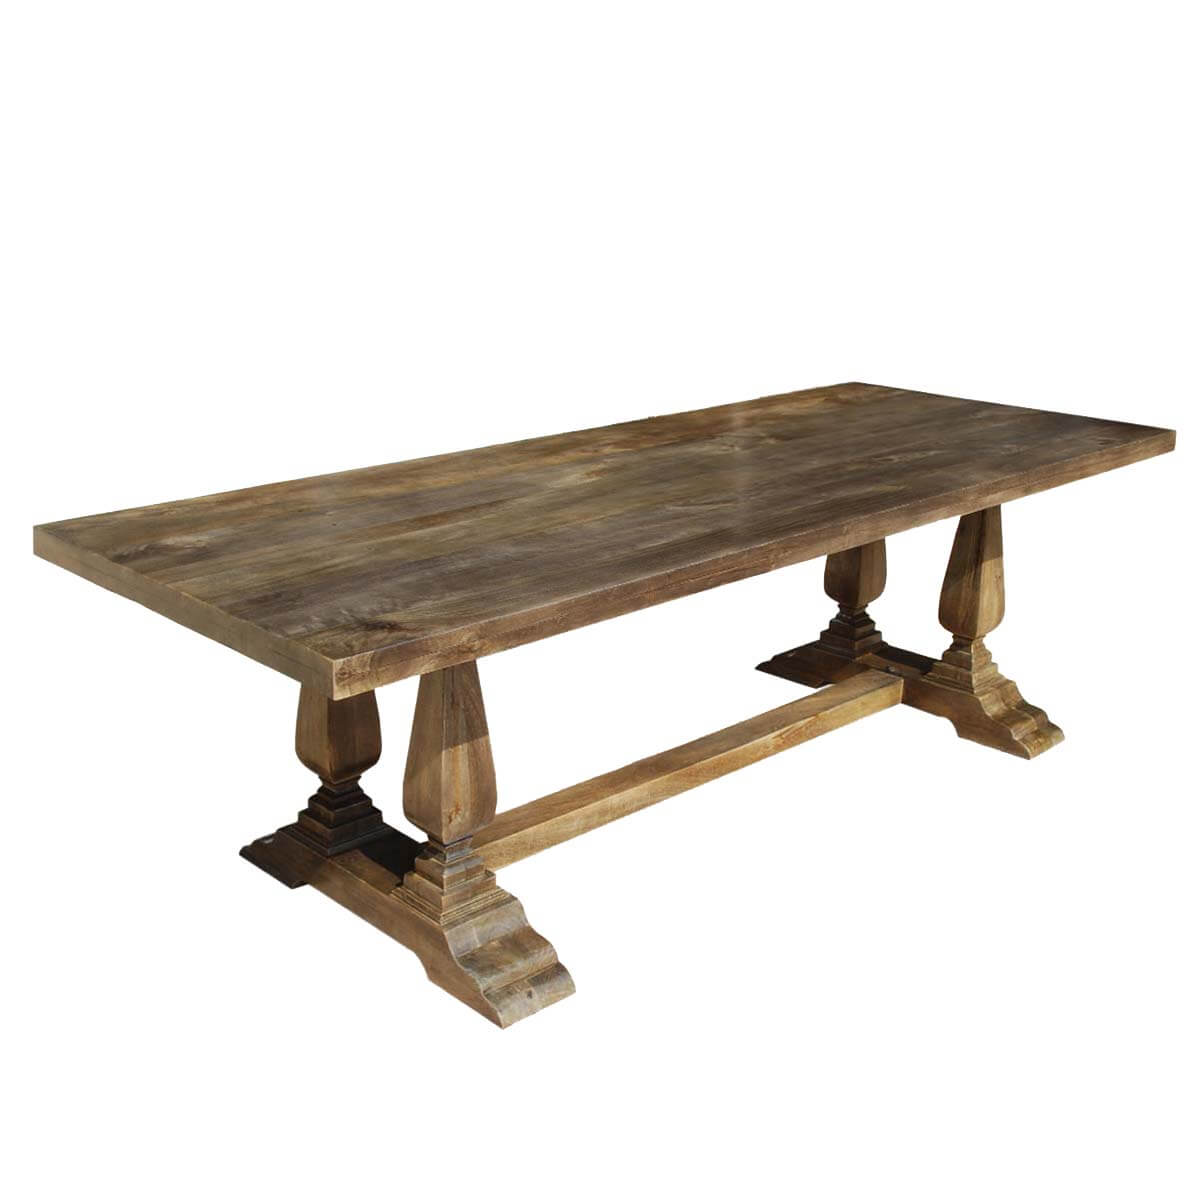 Pelham rustic 98 solid wood trestle pedestal dining table for Solid wood dining table